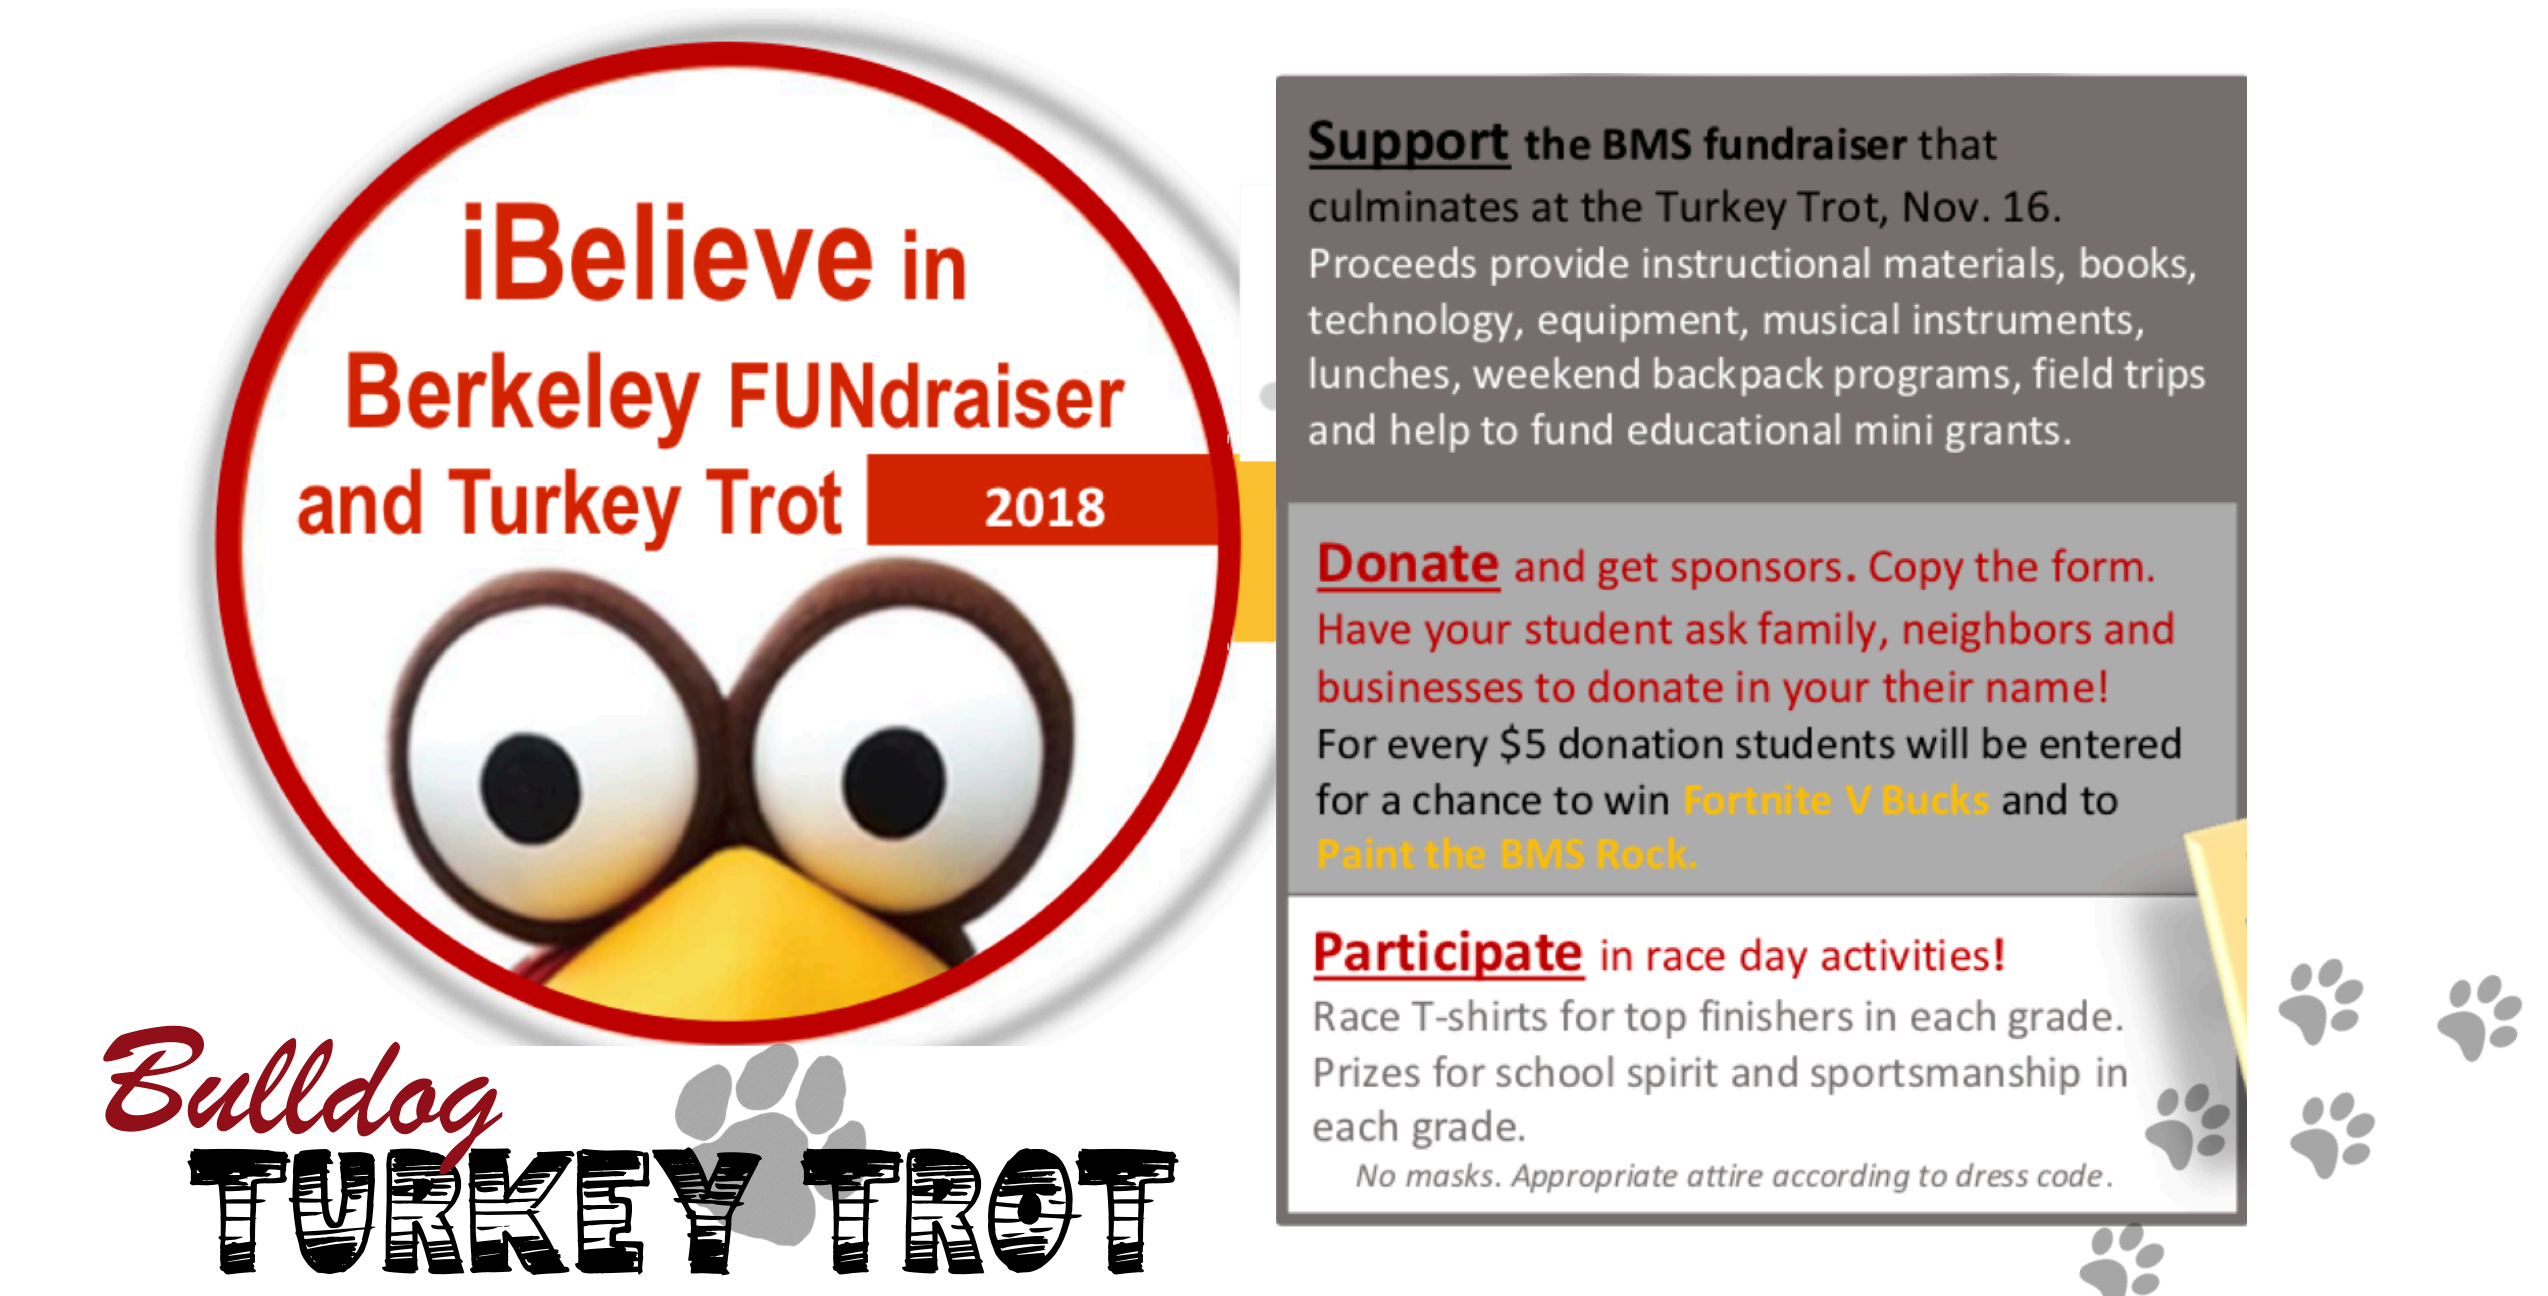 I Believe in Berkeley Campaign + Turkey Trot I Believe in Berkeley Donations Our primary fundraiser is the I Believe in Berkeley campaign. 100% of your donations support the PTA's programming, events, and teacher mini grants. We've started the year focused on students--for a $5, $10, or $20 donation, students can autograph their grade-level banners. But we need family support, too! Donate in any amount on our I Believe in Berkeley Donations site, or send in a check made out to the BMS PTA. Help us meet--or exceed!--our $3400 goal. Students will celebrate our success at the annual BMS Turkey Trot on Friday, November 16. If you know of a local business that would like to sponsor I Believe in Berkeley, please contact the PTA at berkeleymiddlepta@gmail.com. If you'd like to know more about the programming, events, and grants supported by your donations, read this PTA Info Sheet.